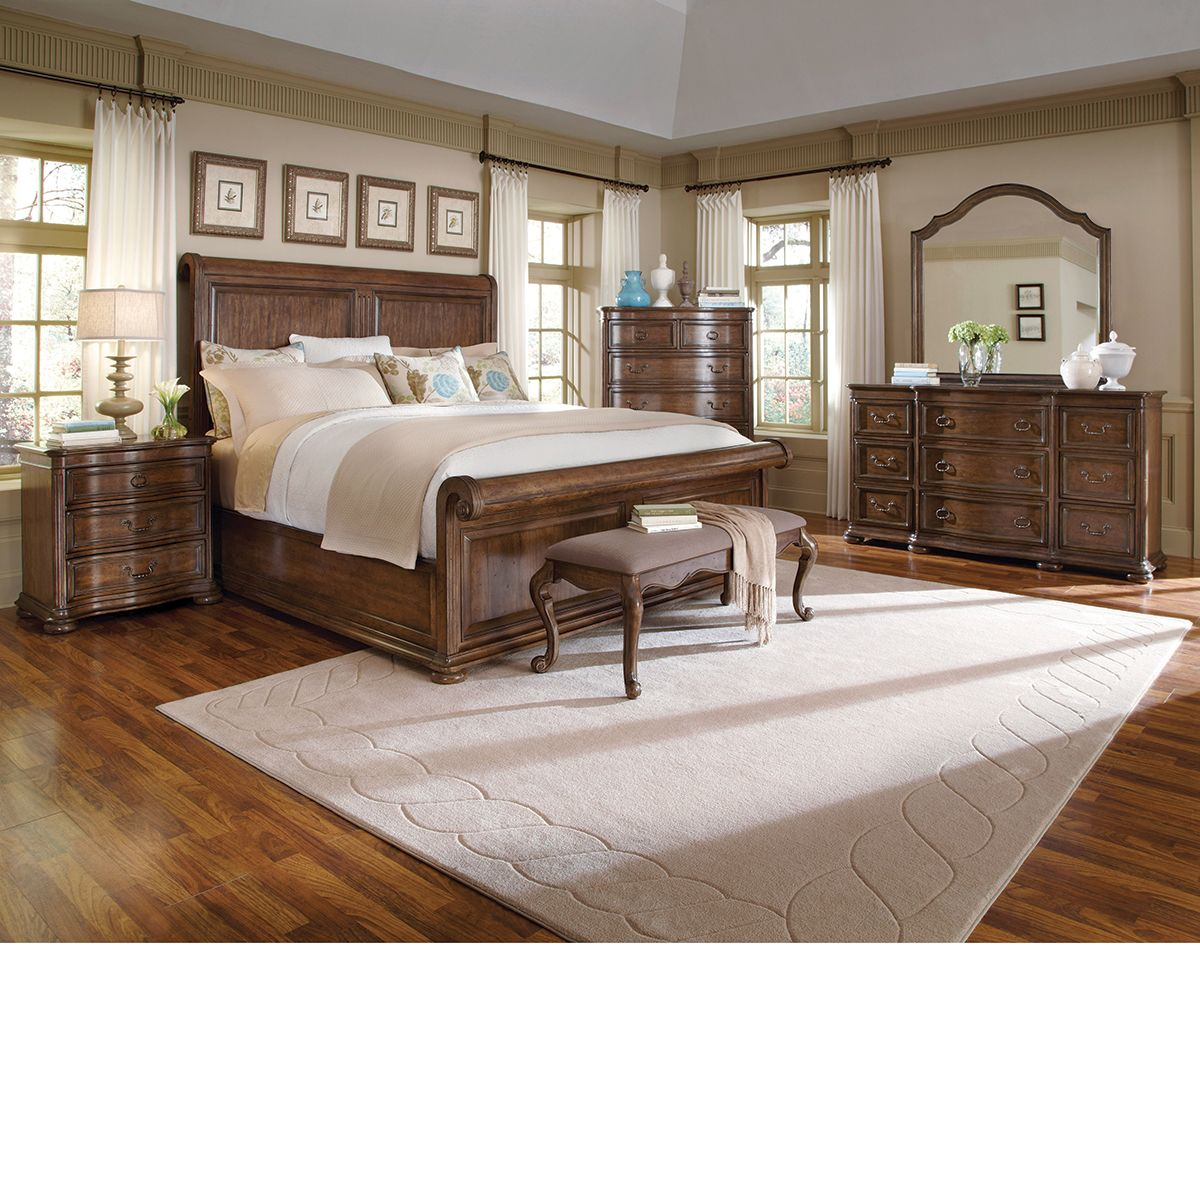 Master bedroom furniture  The Dump Furniture  COTSWOLD SLEIGH  Bed search  Pinterest  Dump